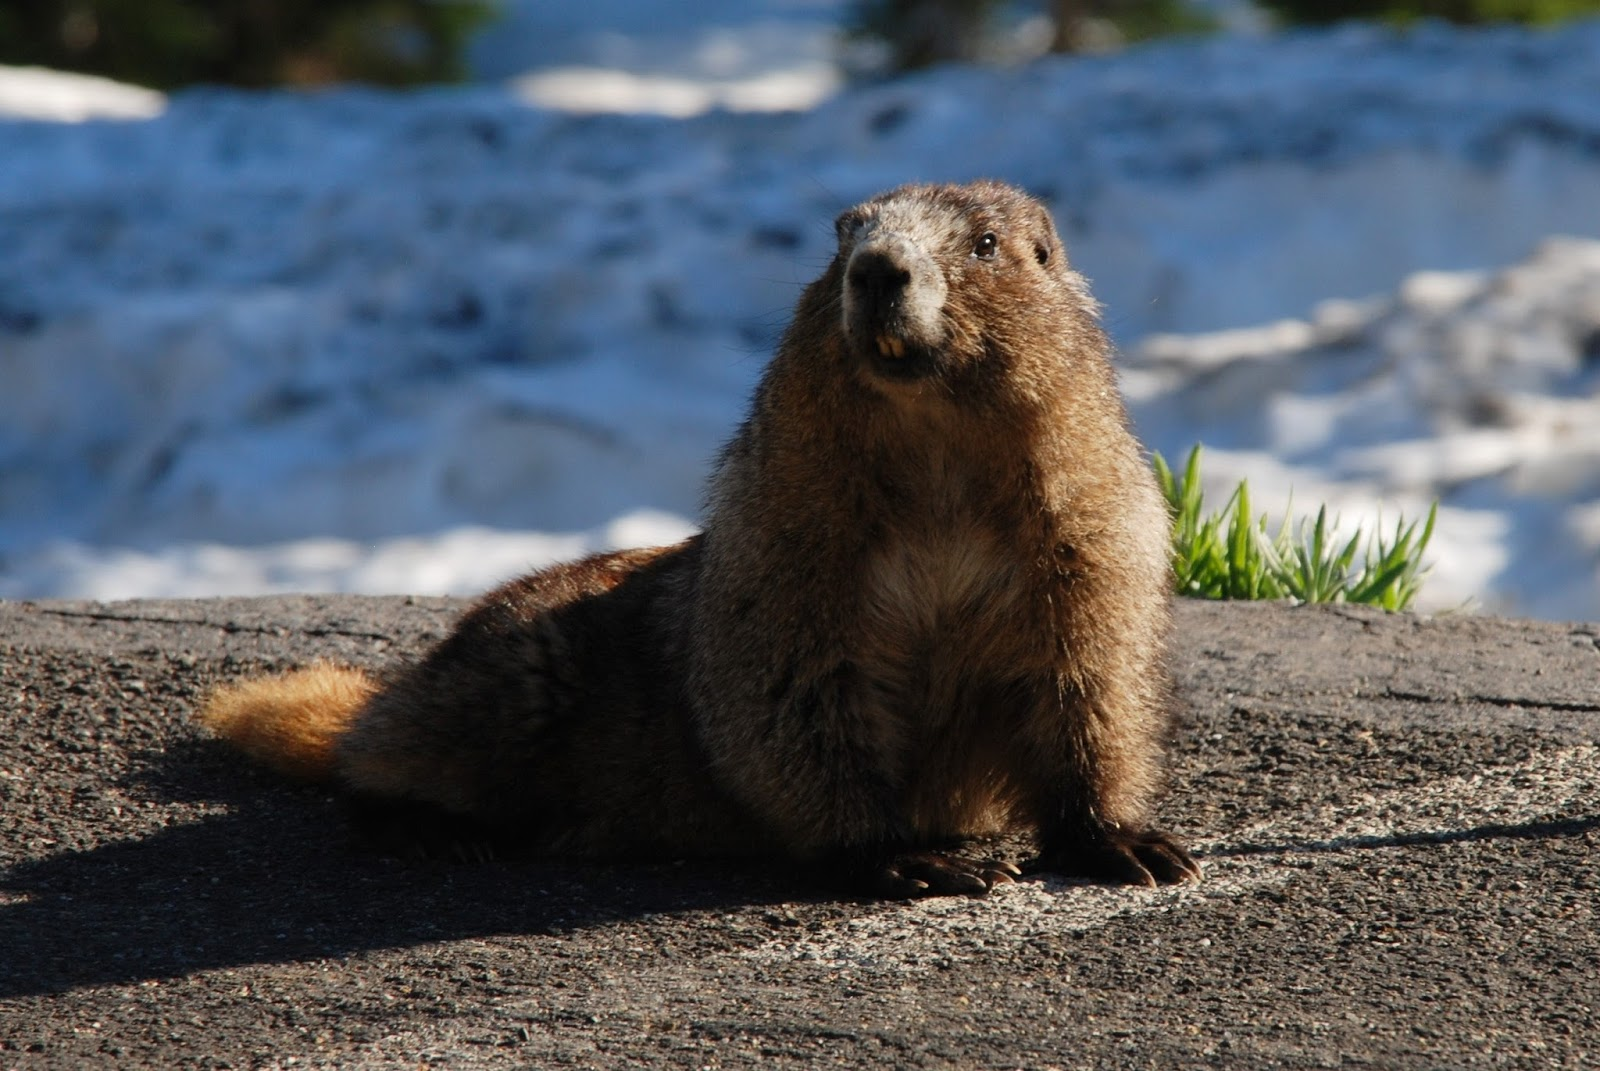 Picture of an alpine marmot rodent.